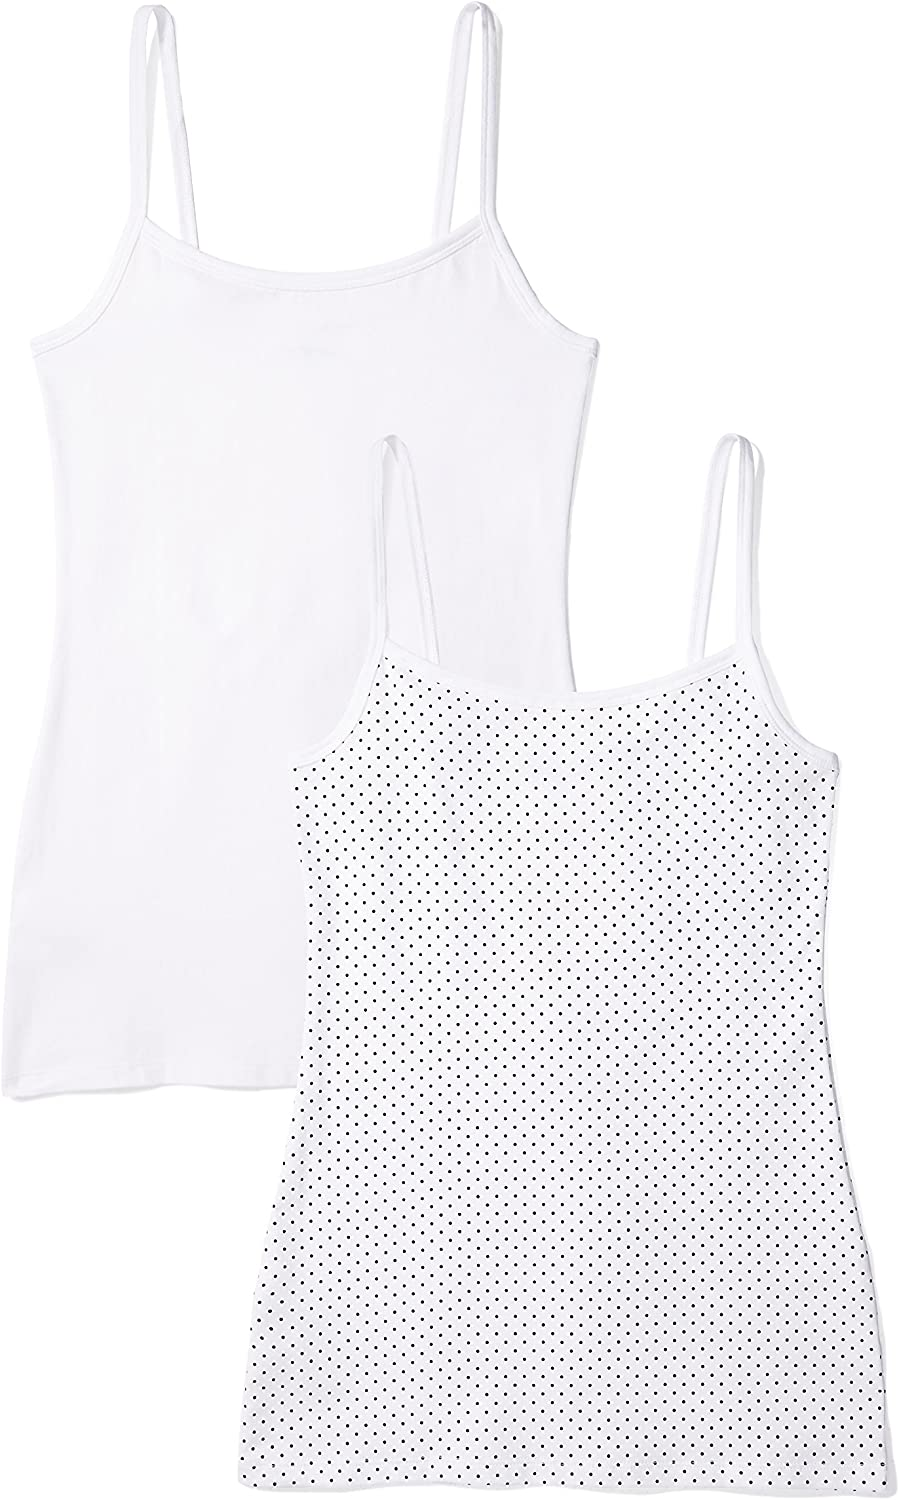 Iris /& Lilly Womens Vest in Cami Shape Brand Pack of 2